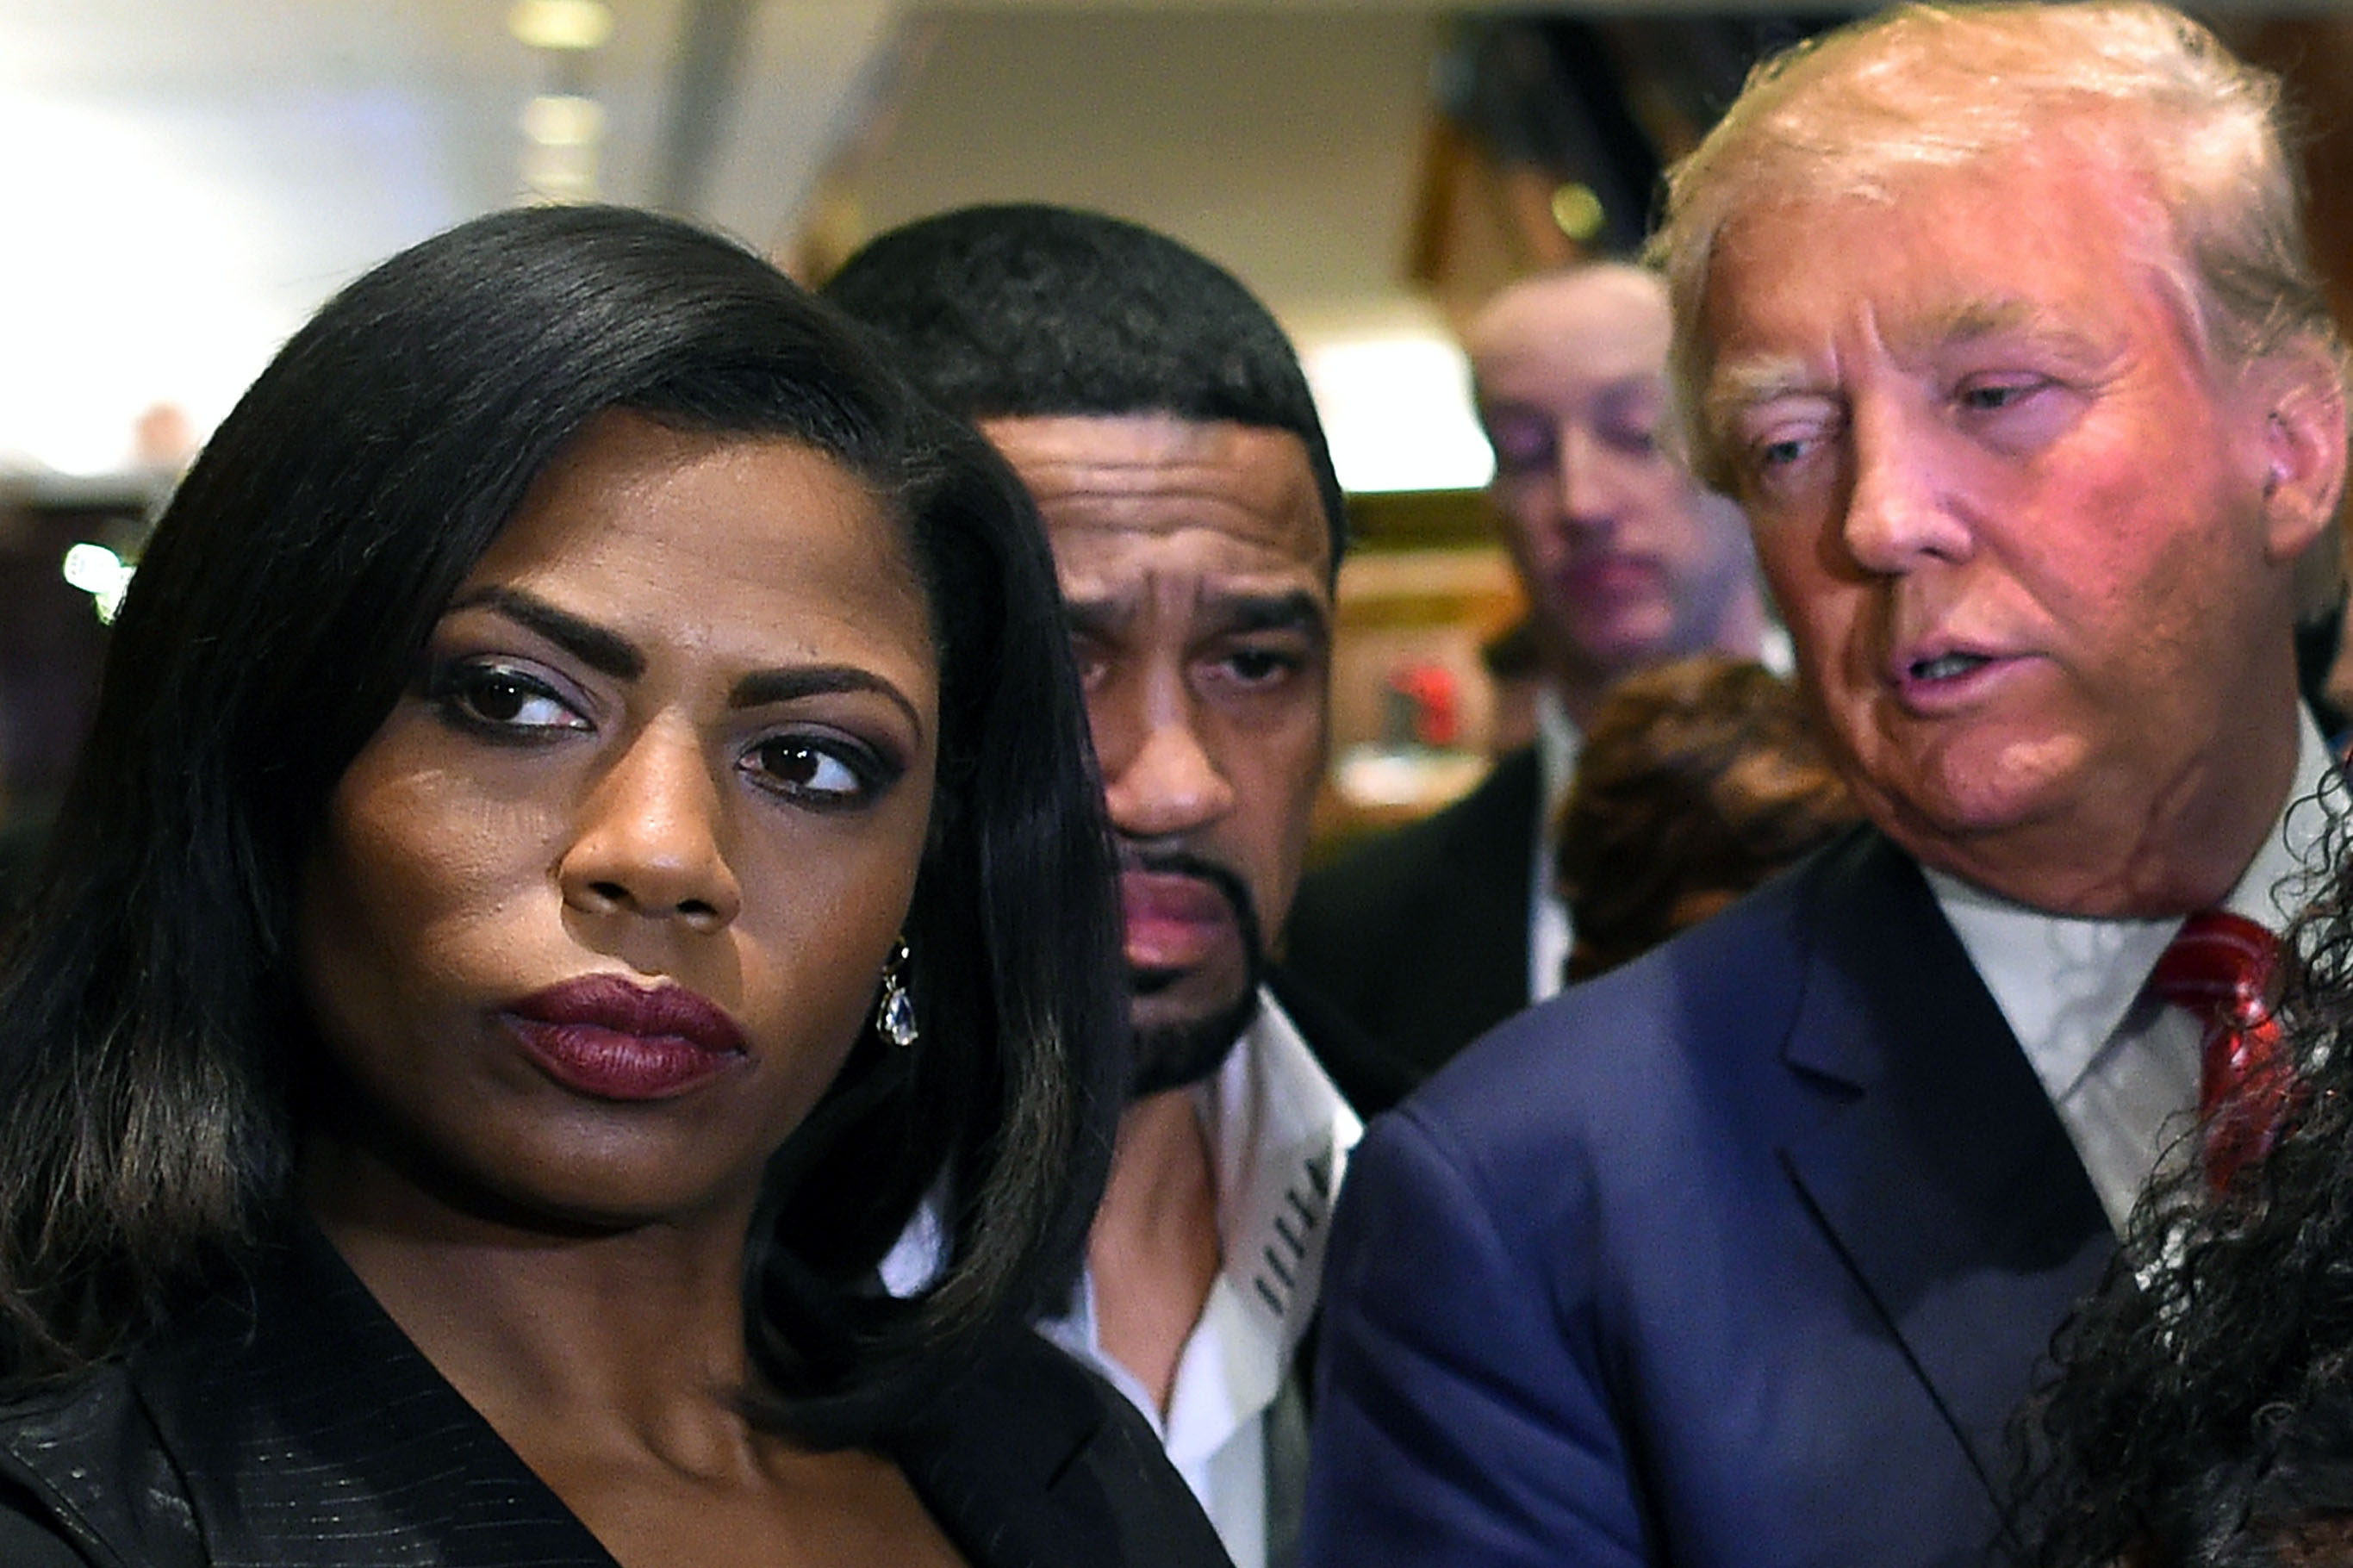 Omarosa Manigault, left, who was a contestant on the first season of Donald Trump's  The Apprentice  and is now an ordained minister, appears alongside Republican presidential candidate Donald Trump during a news conference on Nov. 30, 2015.